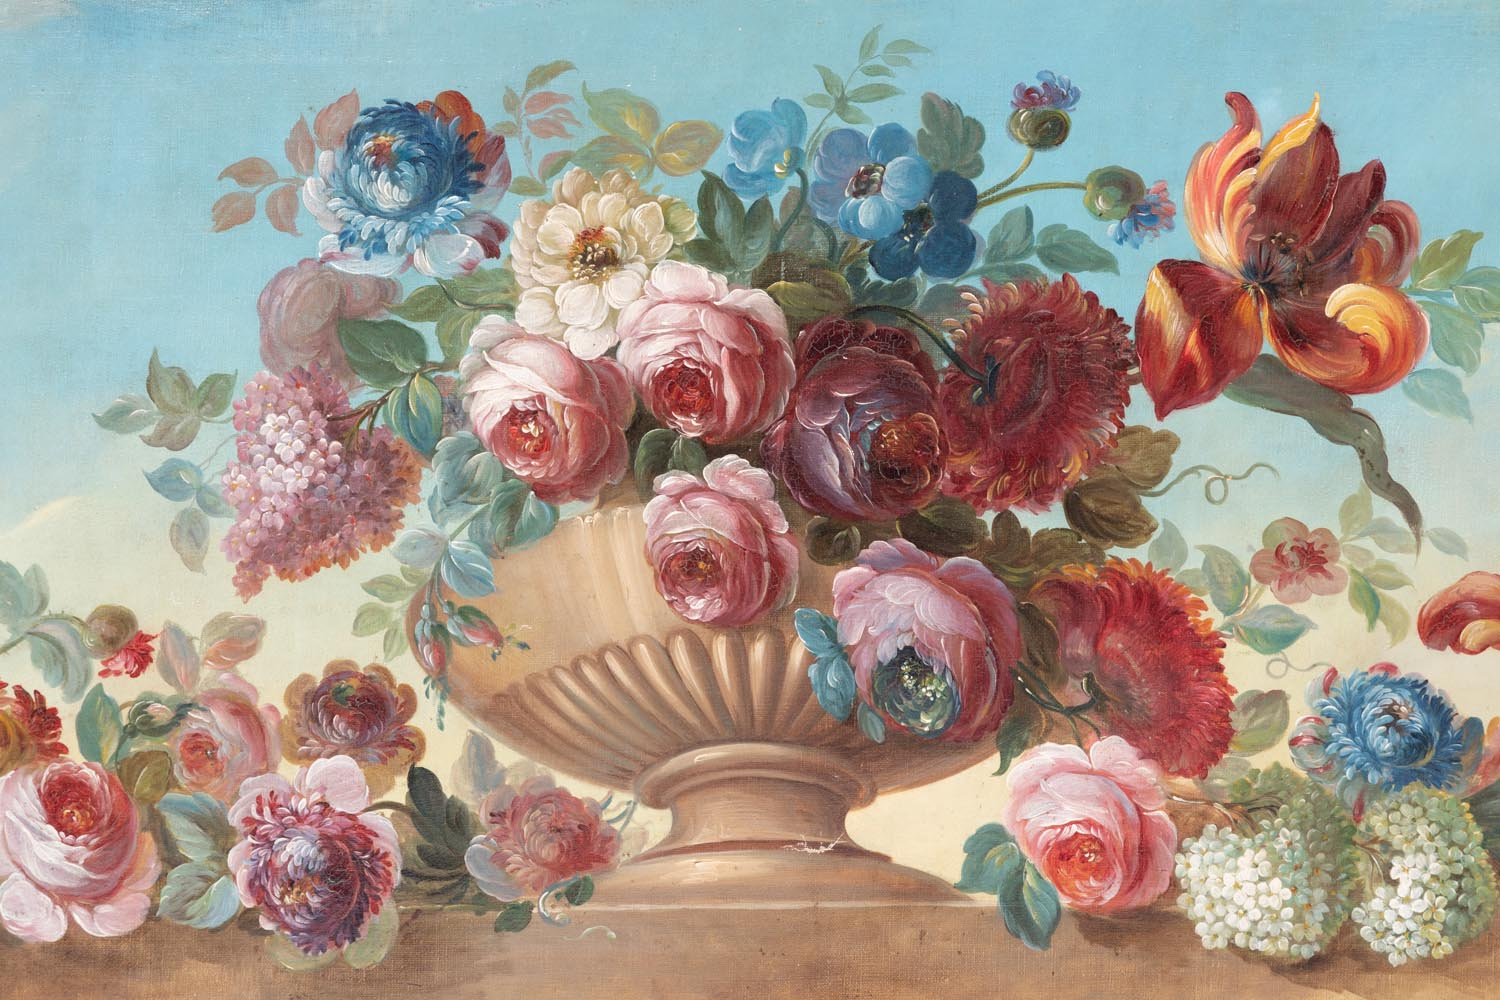 Jean-Luc Ferrand Antiquaire & Pair of oil on canvas figuring flowers in vases circa 1900